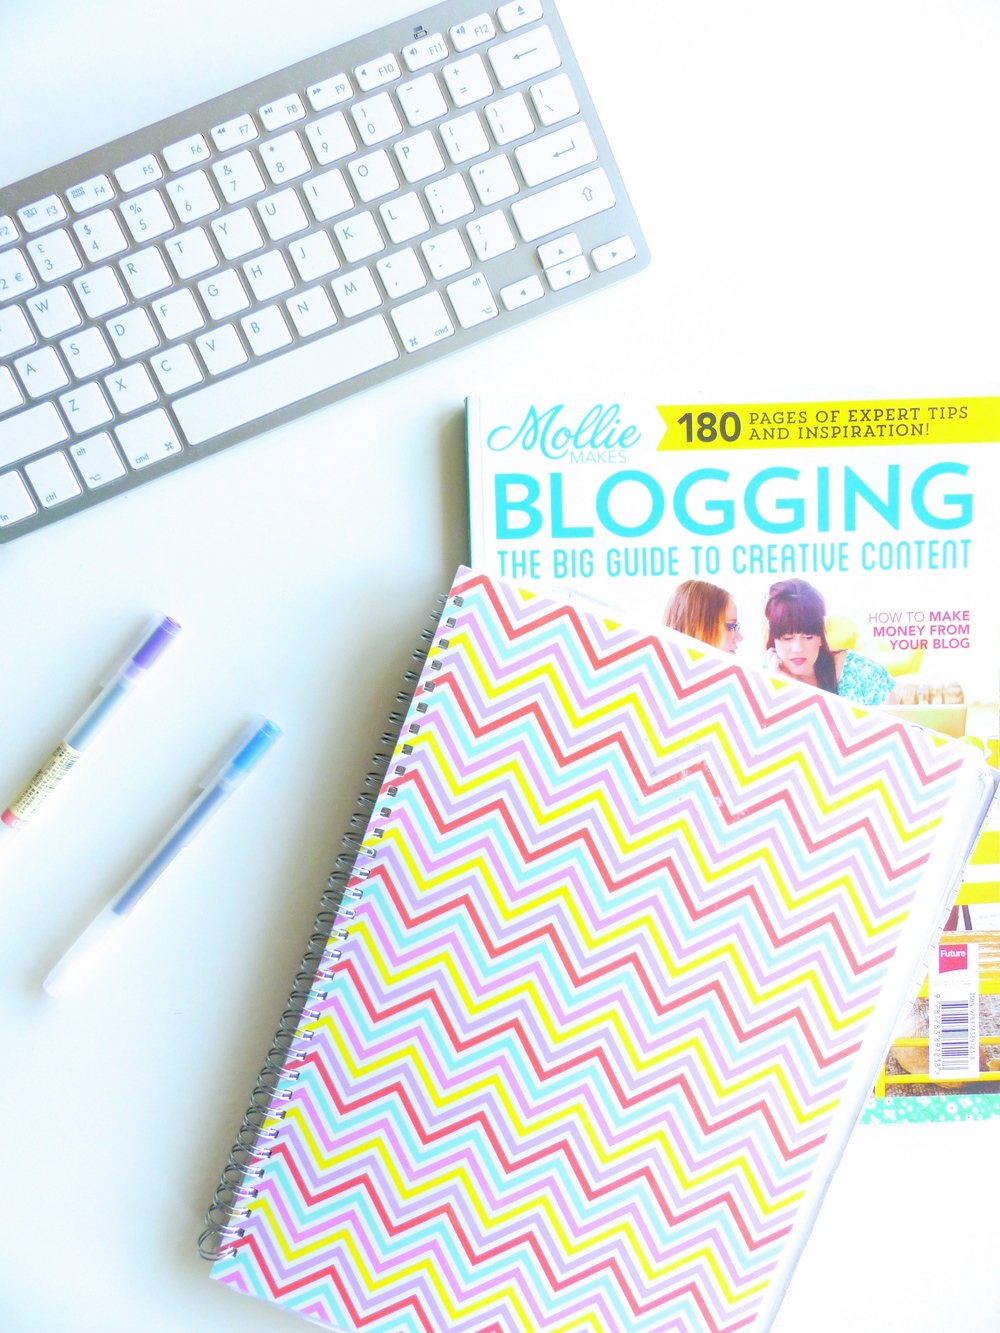 25 OF THE BEST BLOG POST IDEAS FOR BEGINNER BLOGGERS